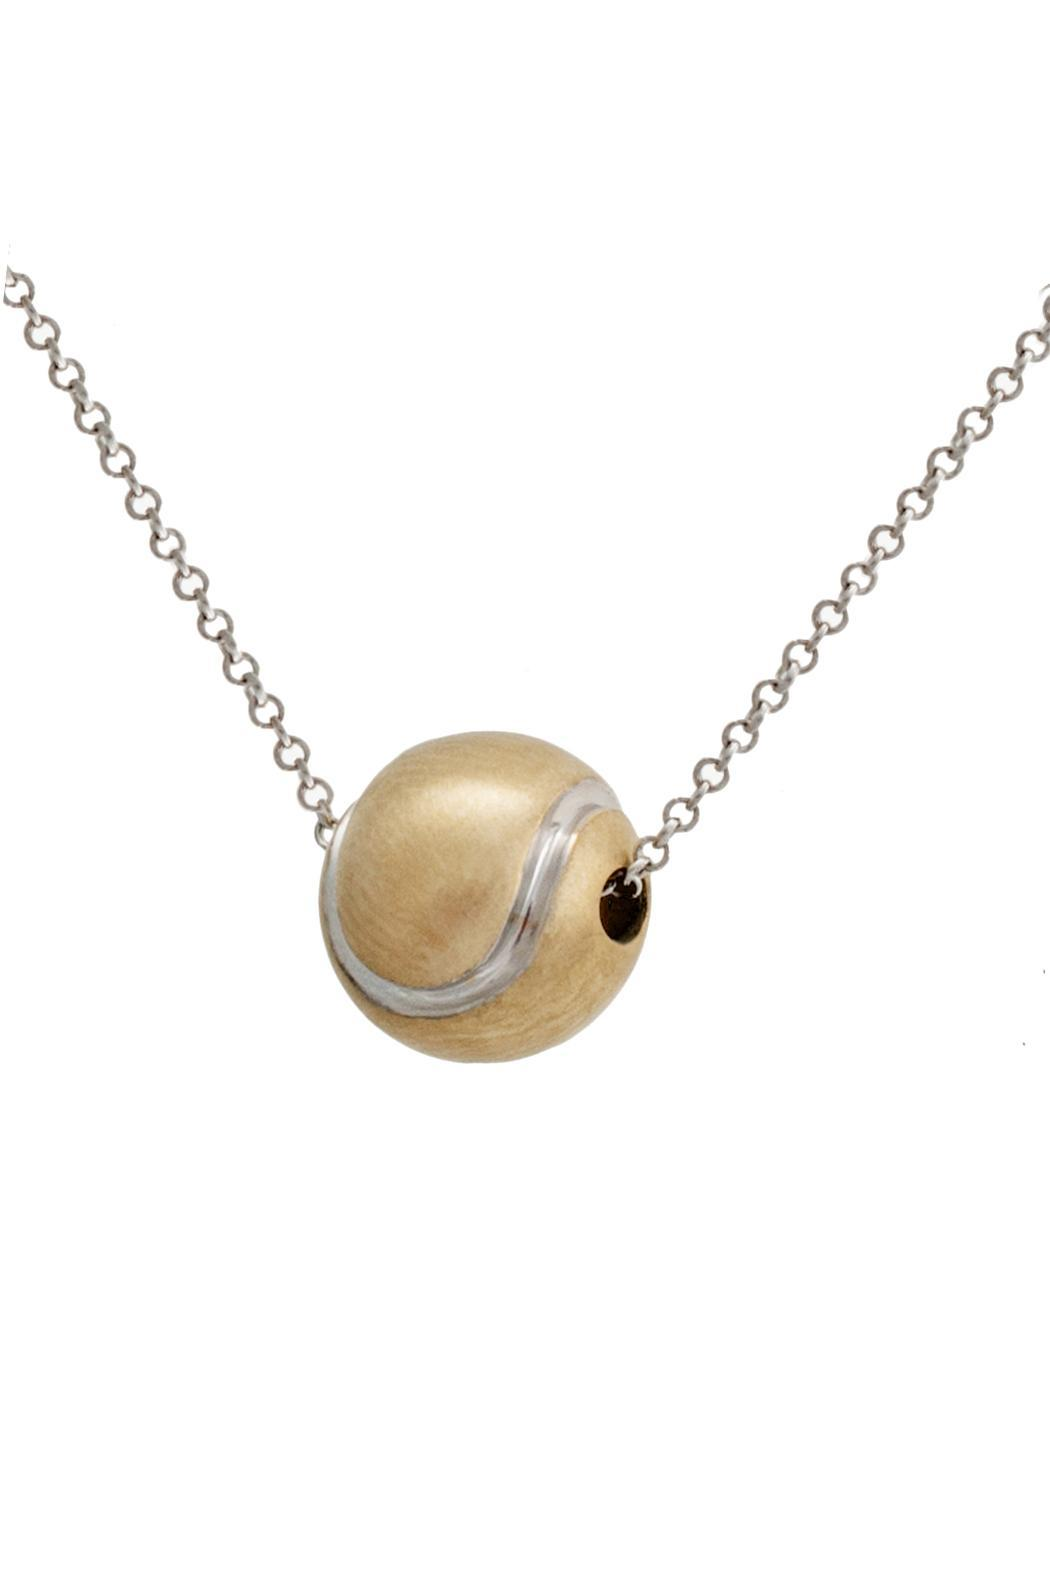 J Briggs & Co. Tennisball 14k Necklace - Front Full Image